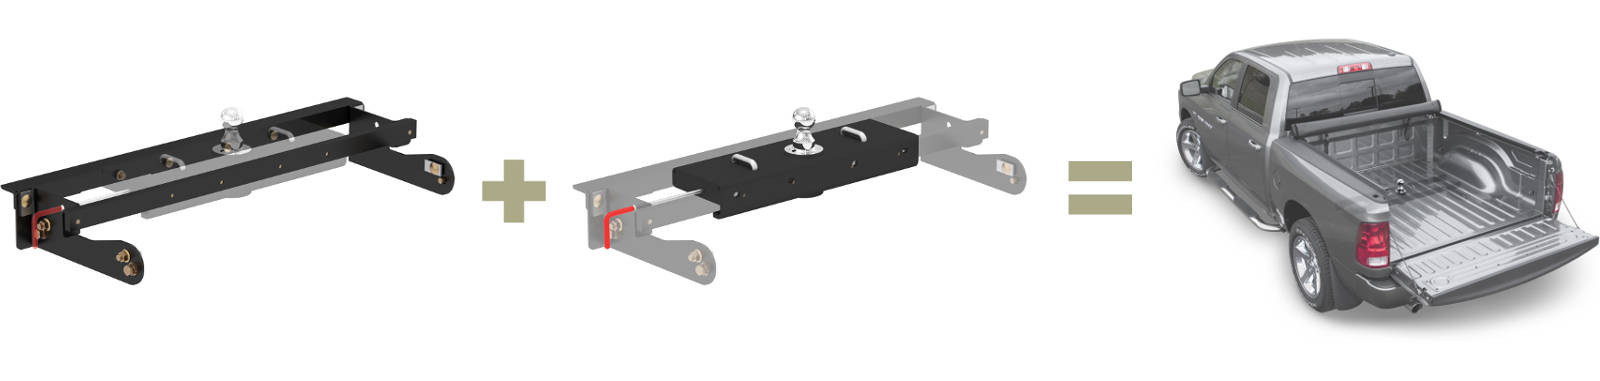 CURT Gooseneck Hitch and Brackets for Truck